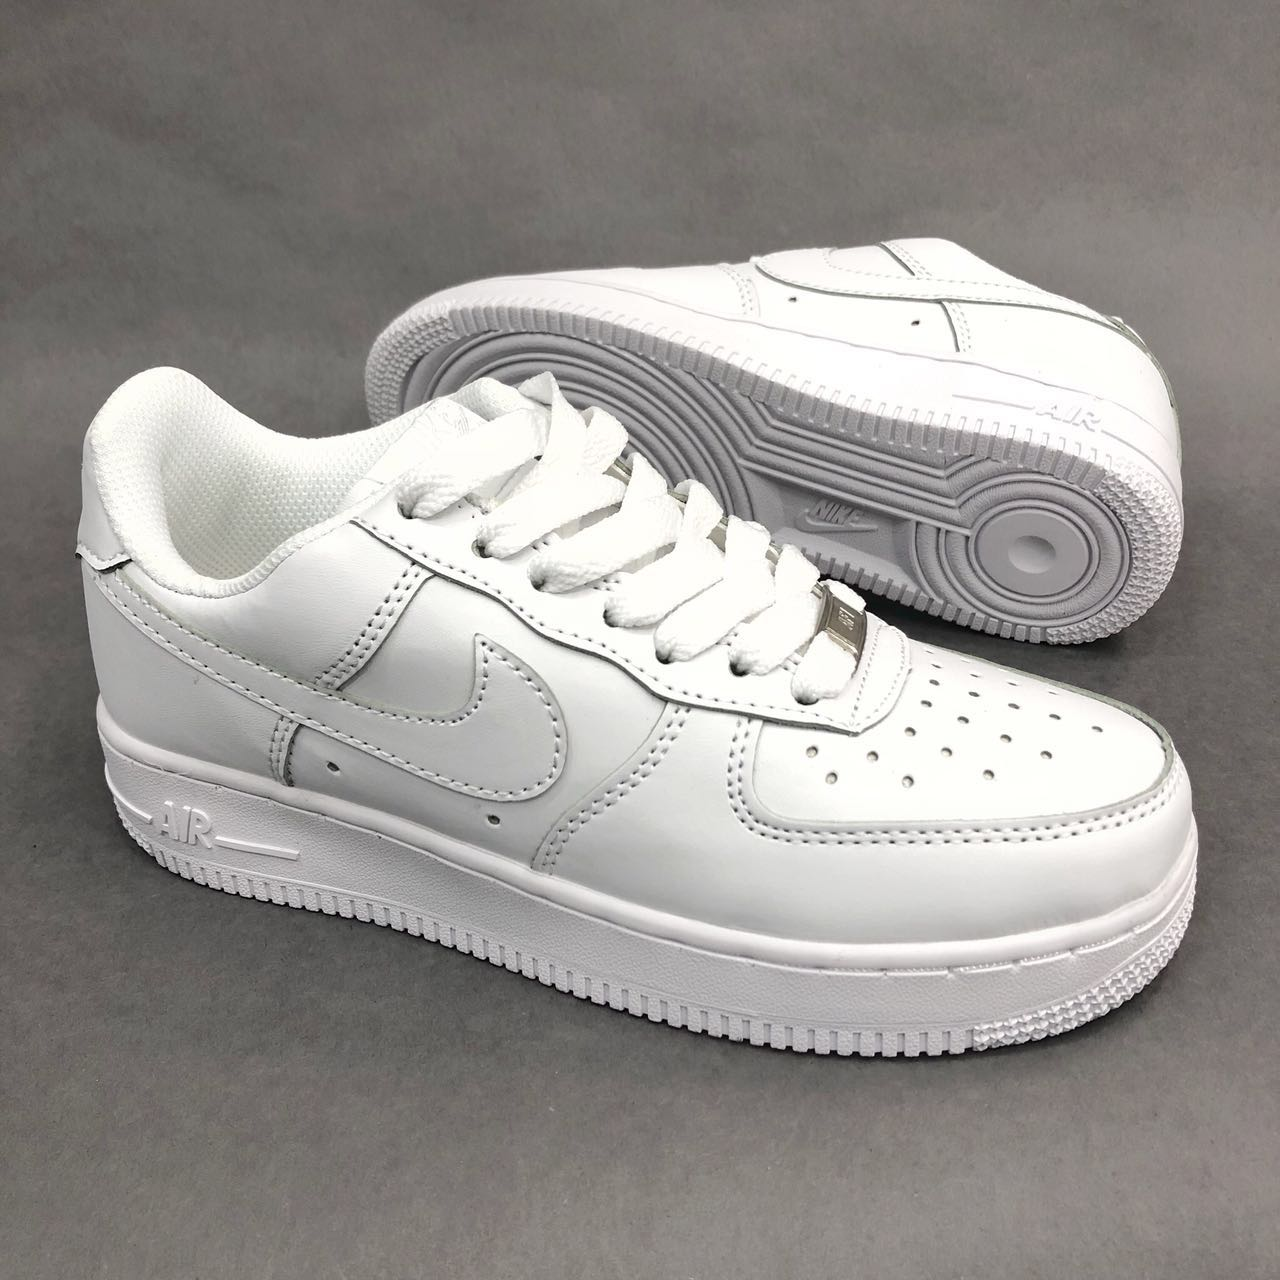 reputable site 2812c 9fb9e Tenis Nike Air Force one Mujer seventy block - ropa importada